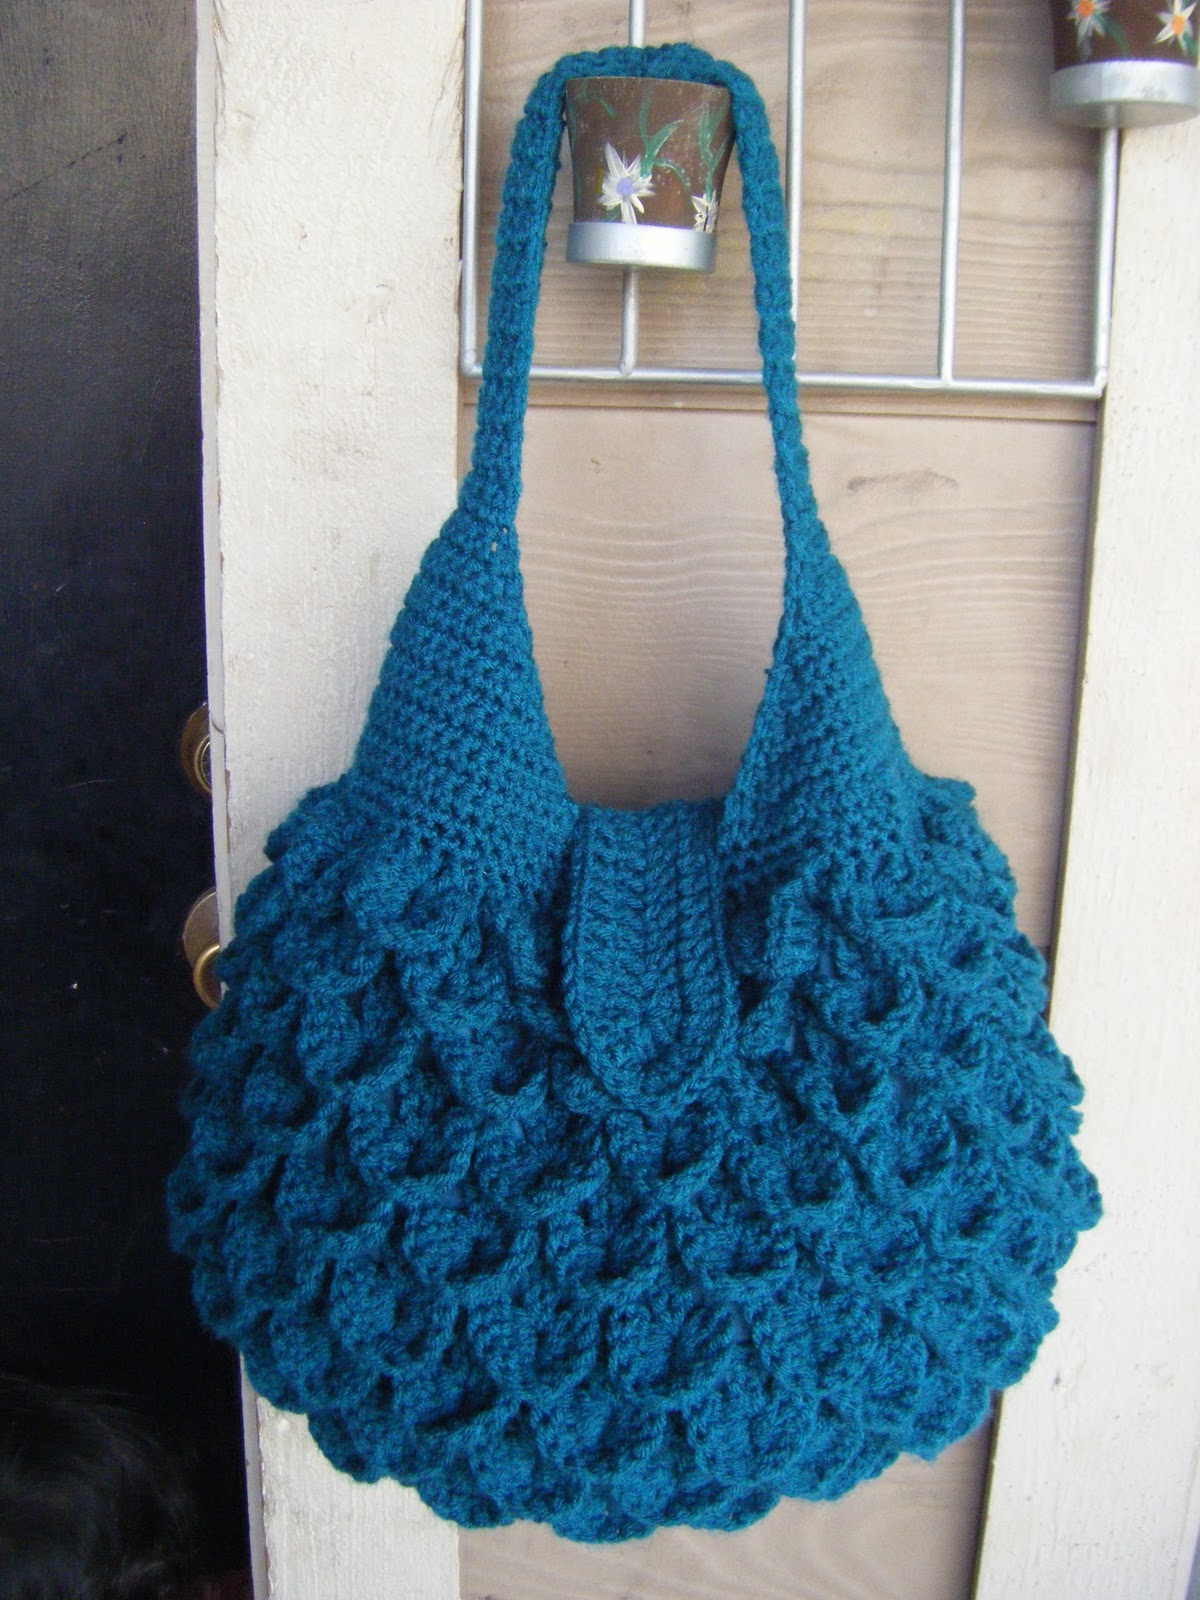 Crochet Backpack Bag Pattern : Best Patterns: Crocodile Crochet Bag PATTERN